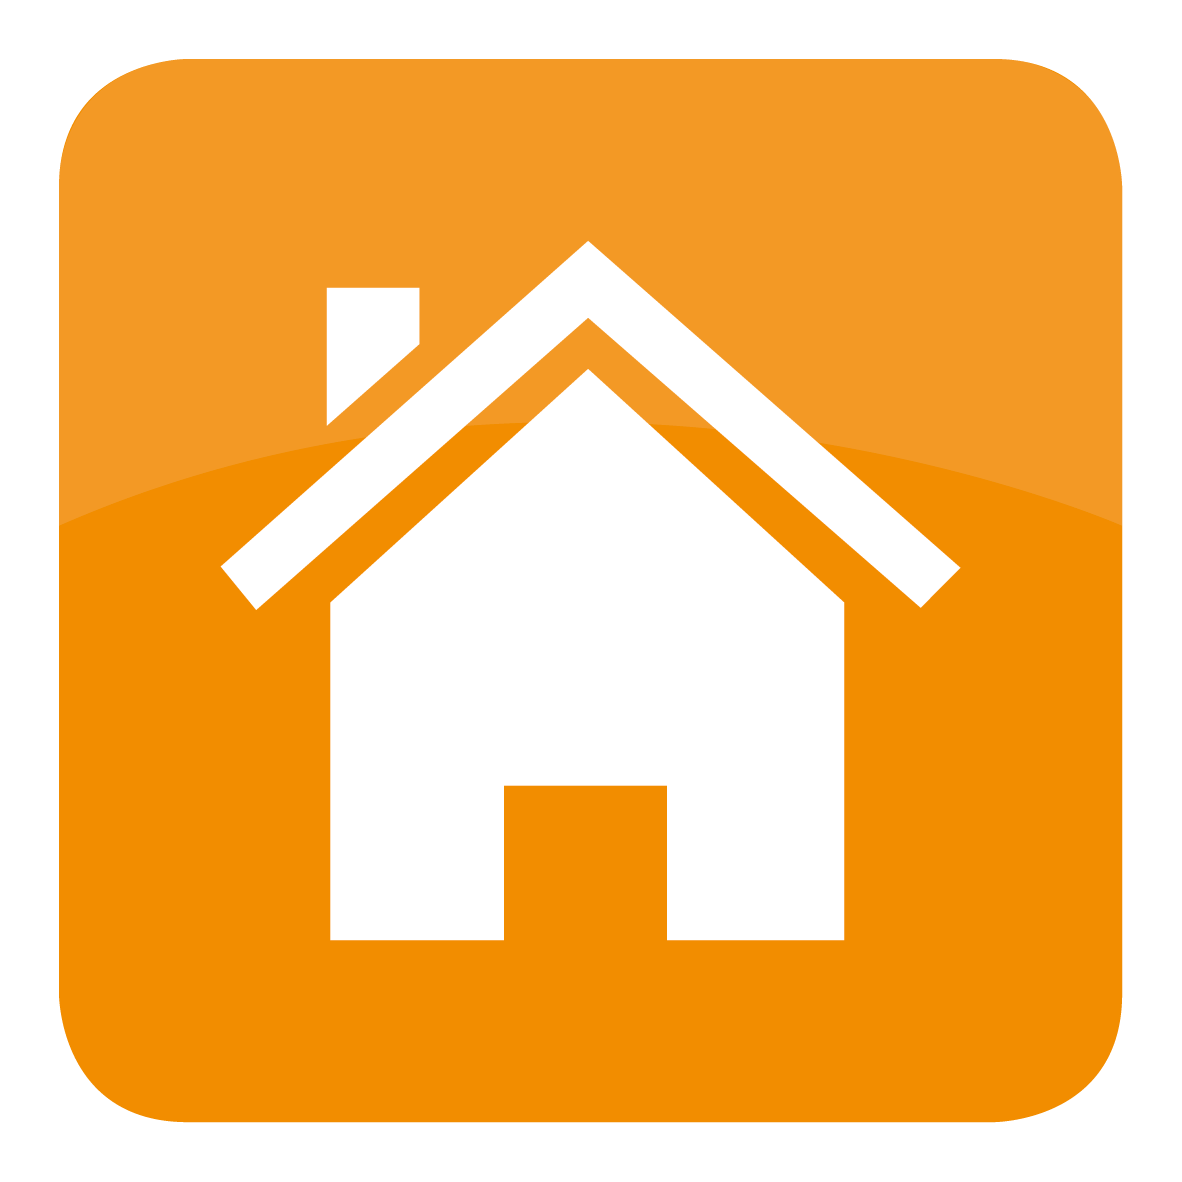 residential_icon.png